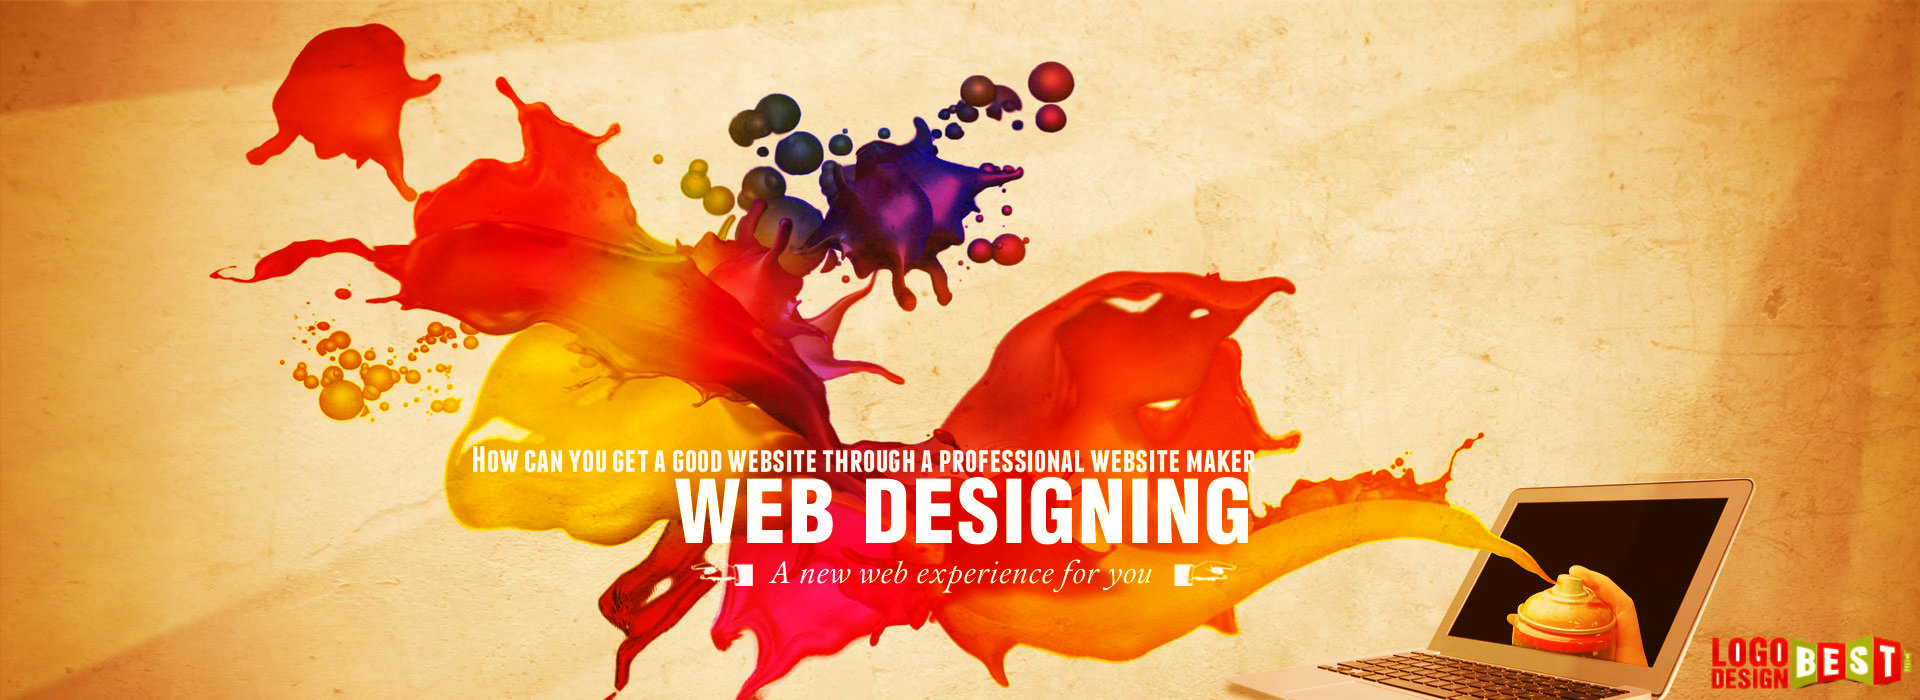 How can you get a good website through a professional website maker? - Image 1